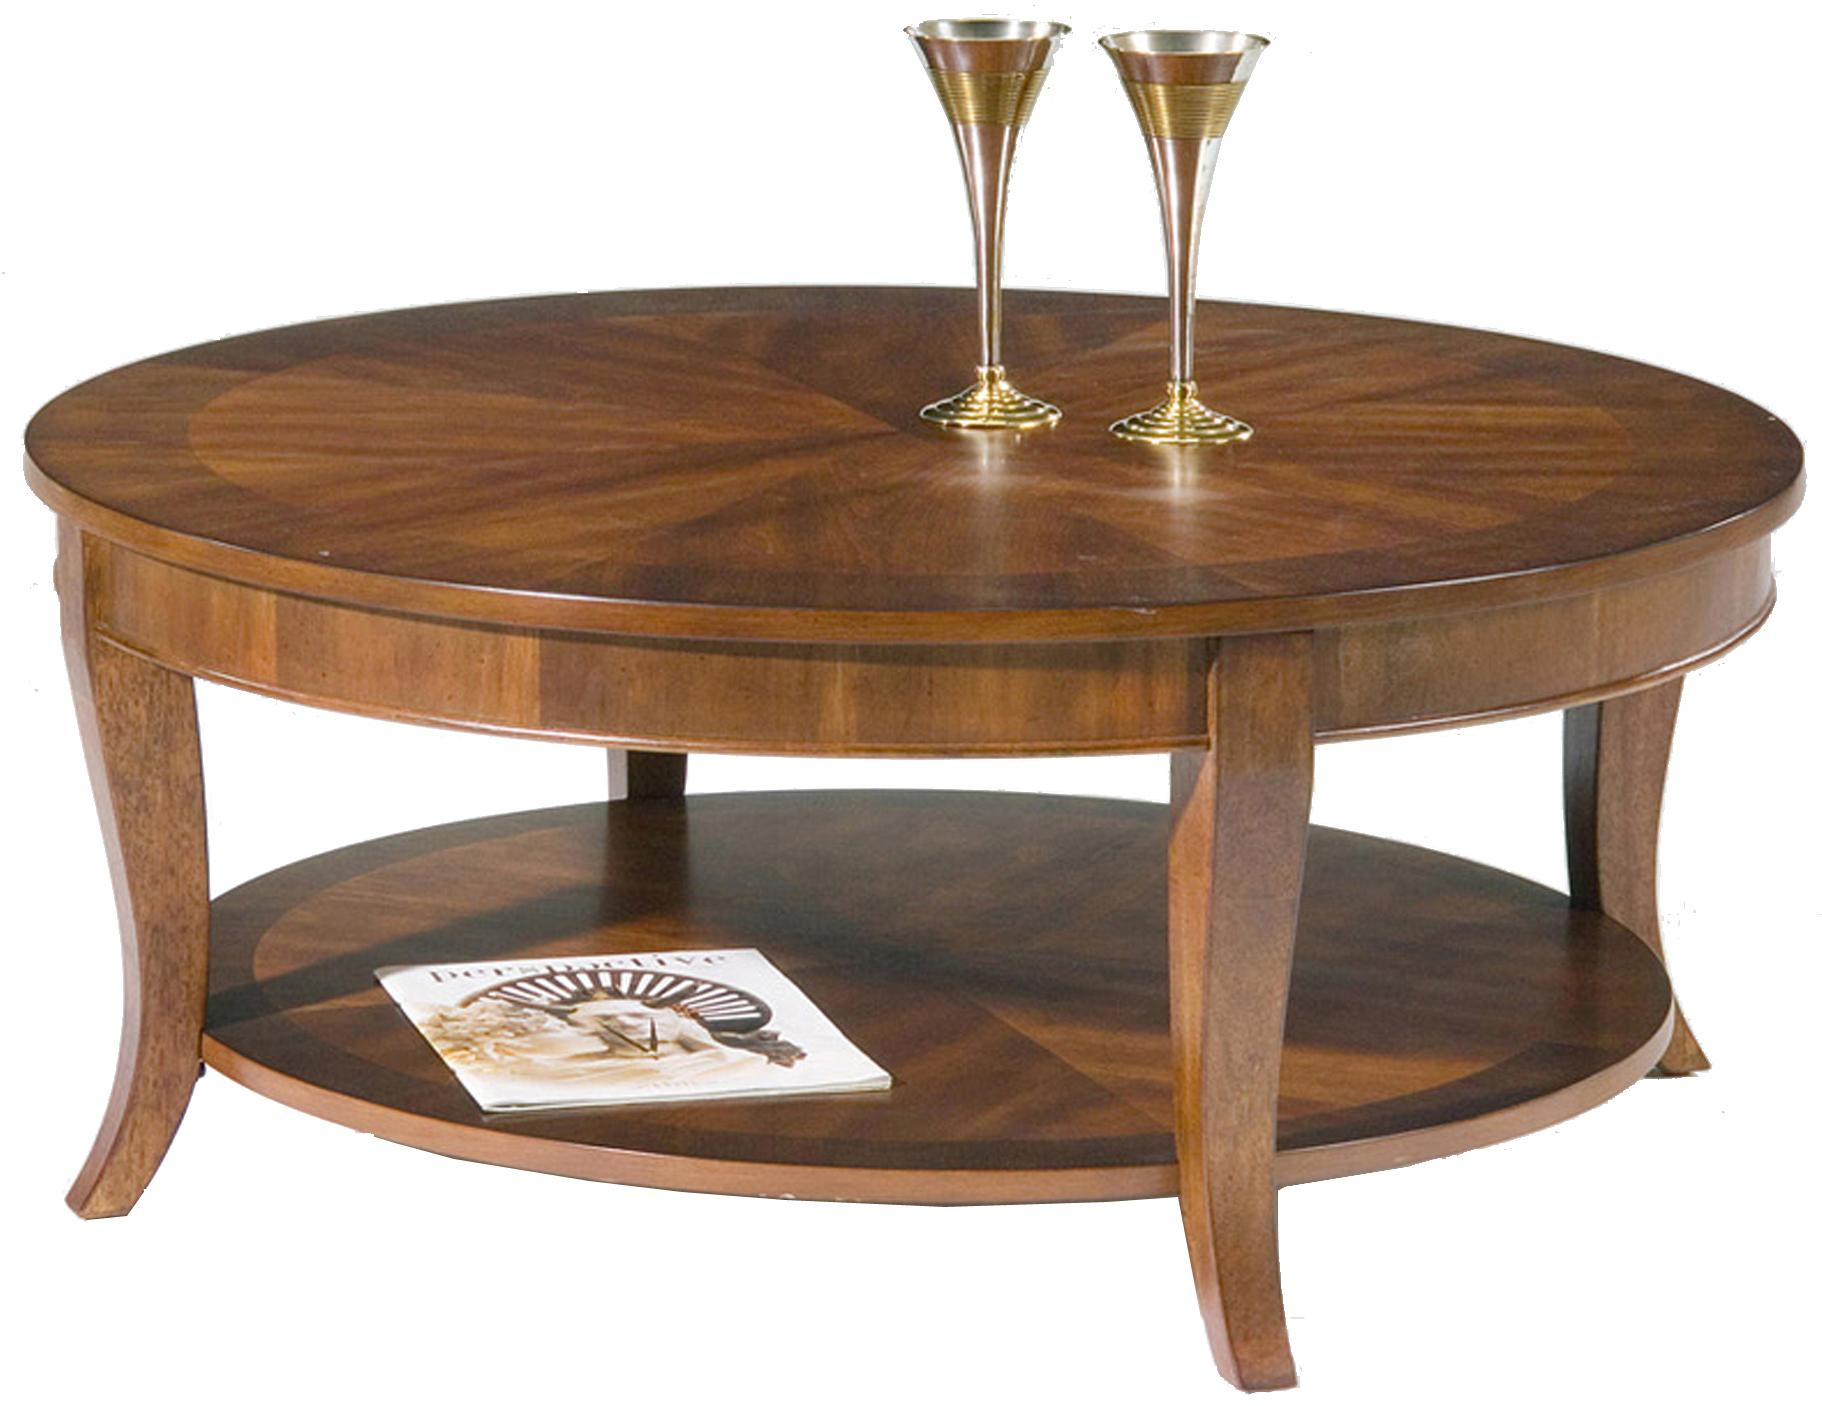 Liberty Furniture Bradshaw Round Cocktail Table - Item Number: 748-OT1010